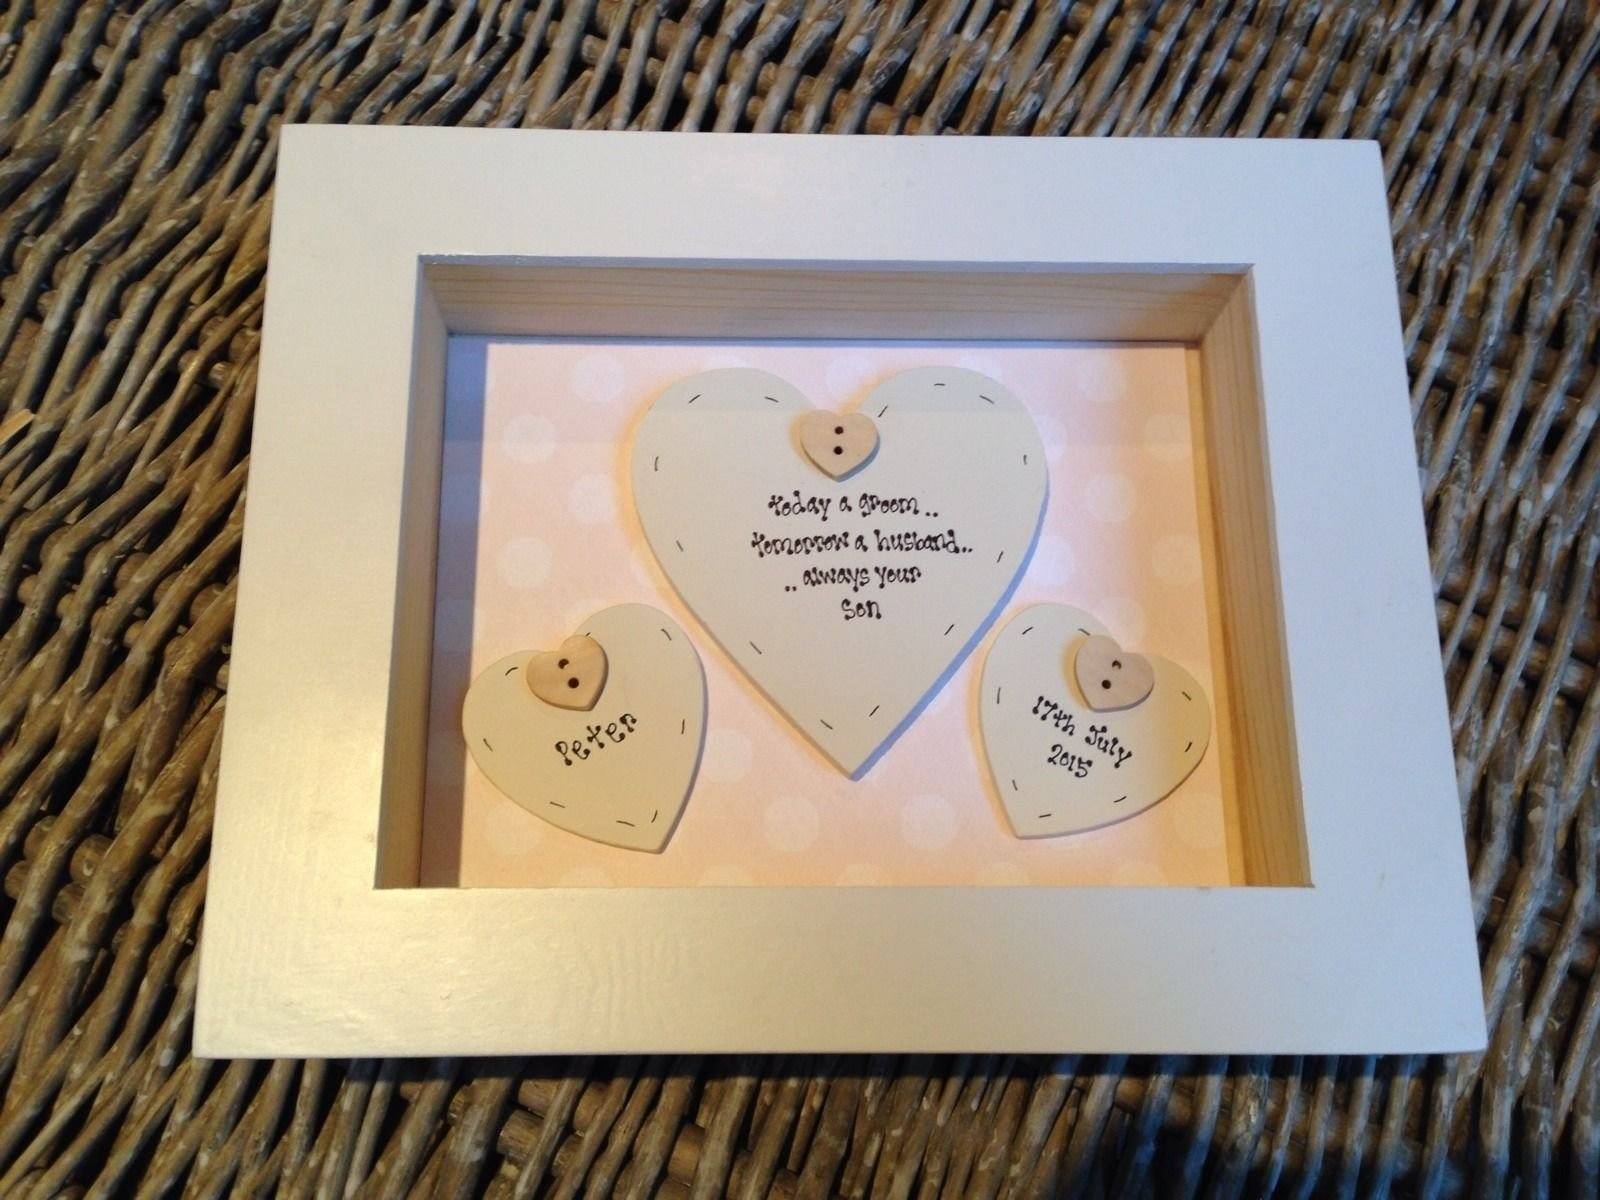 10 Lovable Mother Of The Groom Gift Ideas personalised chic mother of the groom wedding gift box frame present mum 2020